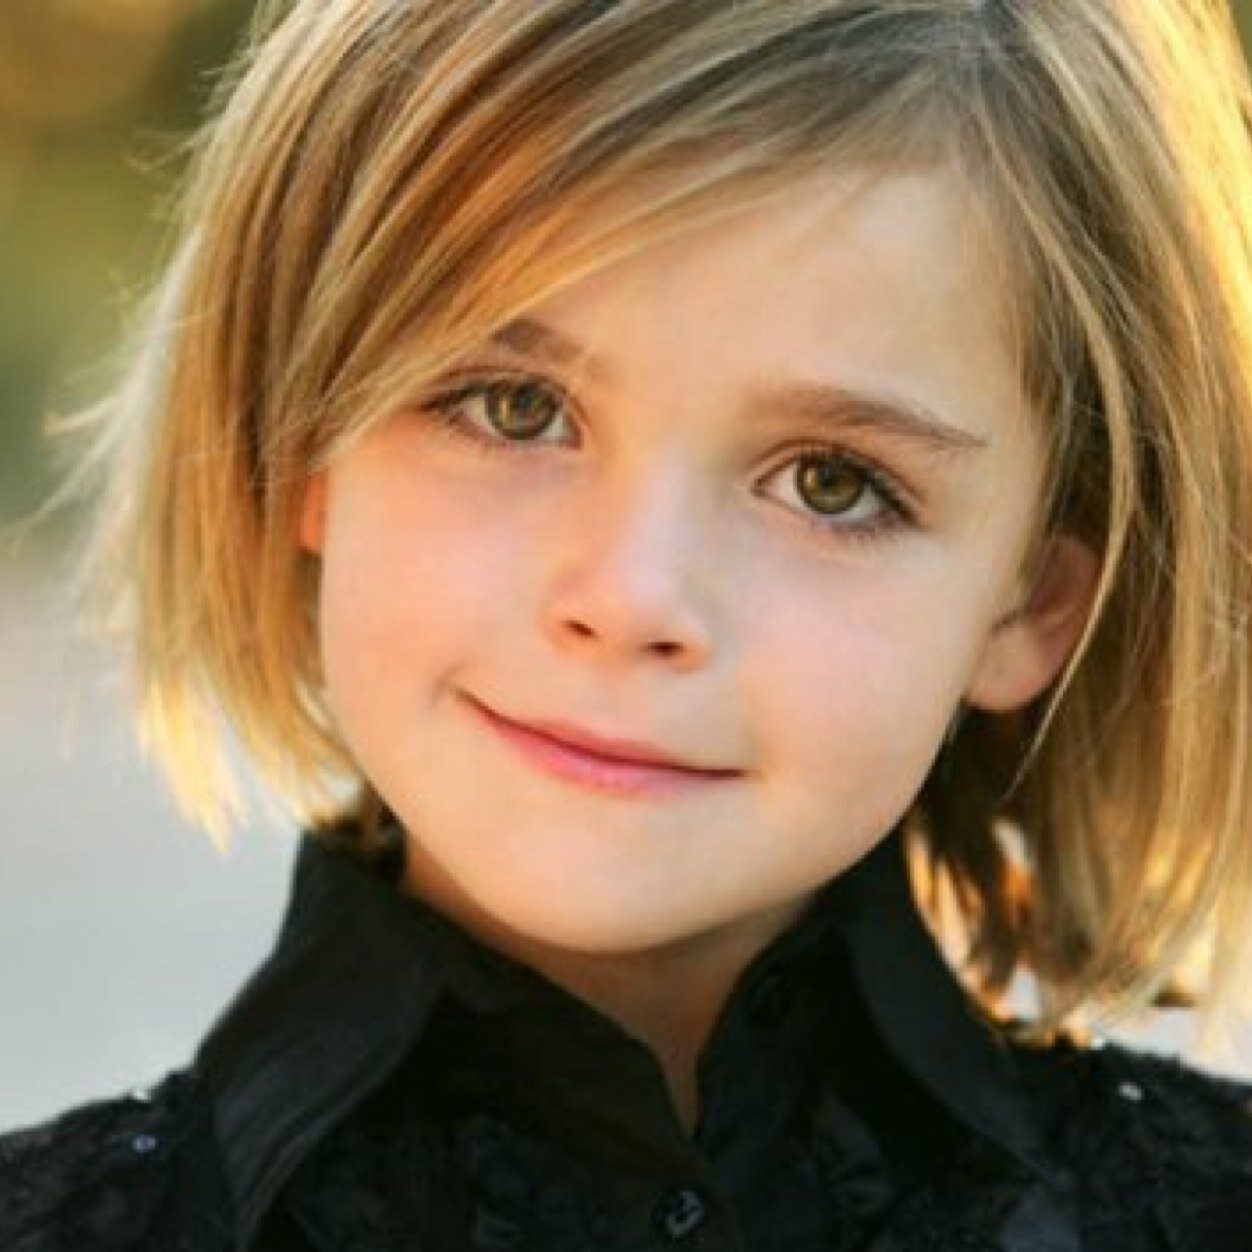 9 Latest Short Hairstyles for Little Girls 2018   Styles ...